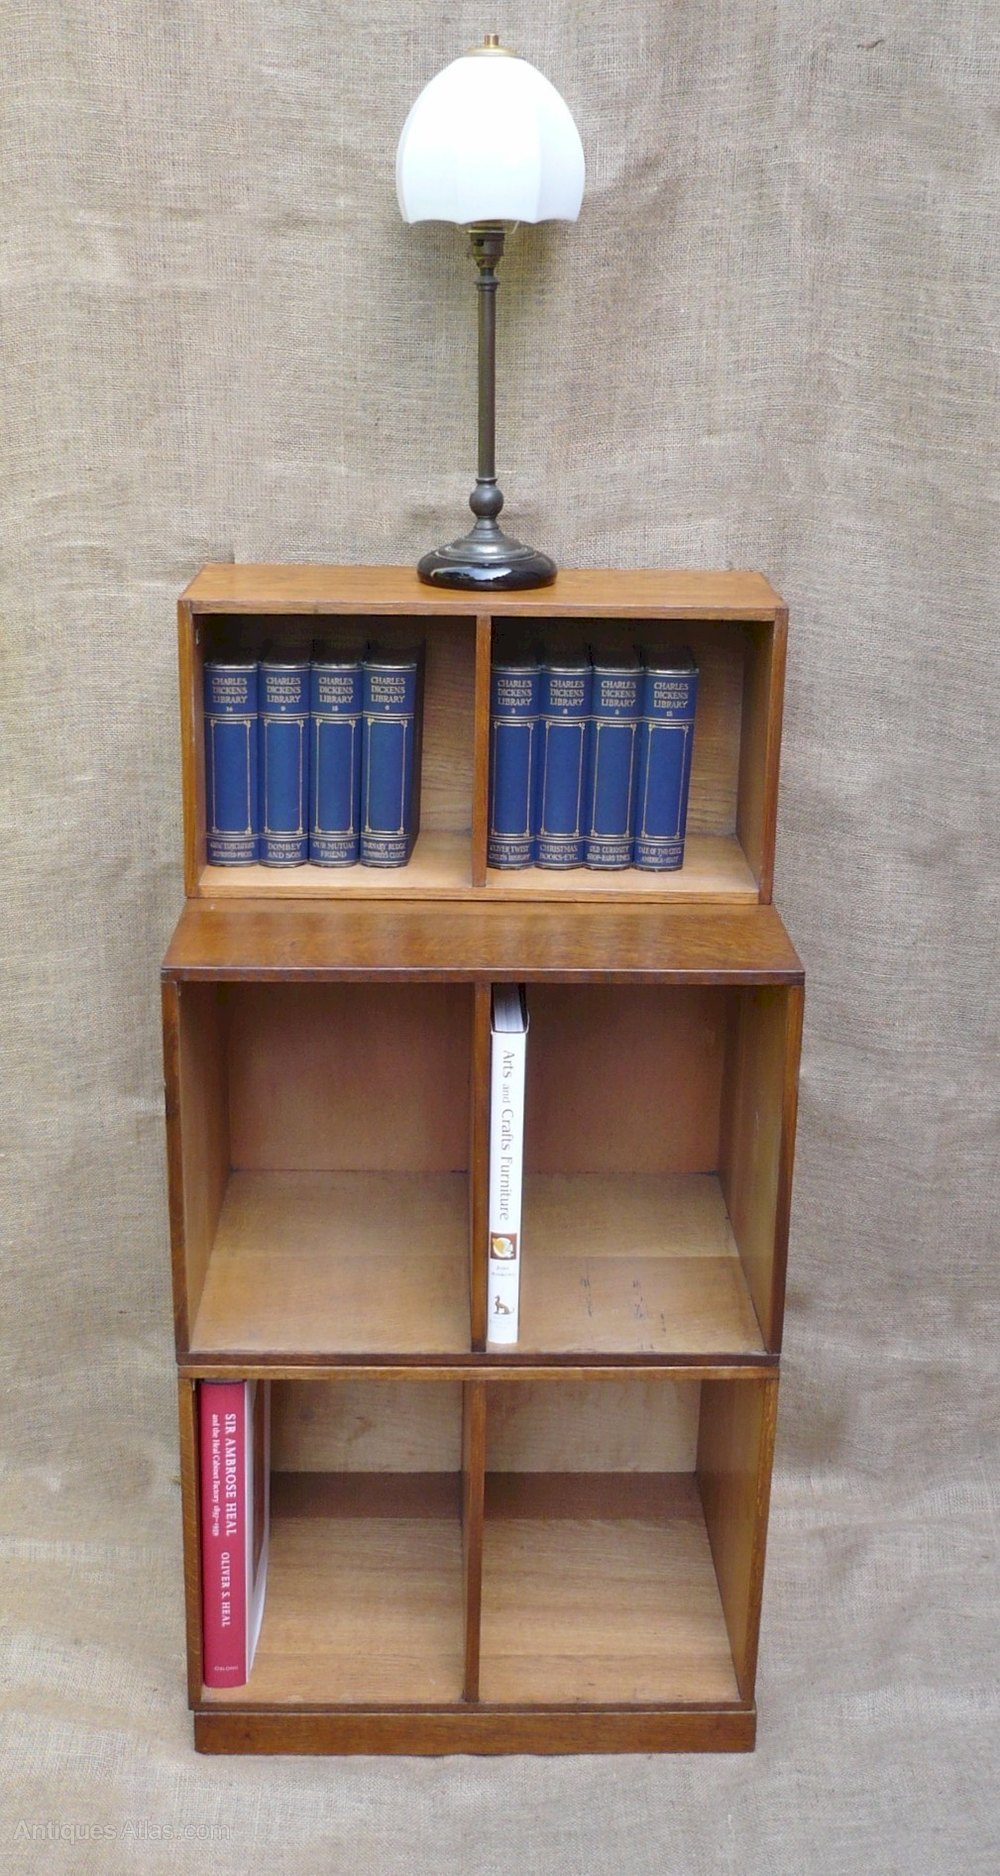 double dormy storage furniture hall shelves new hampshire the bookcases hallway modular way with bookcase house